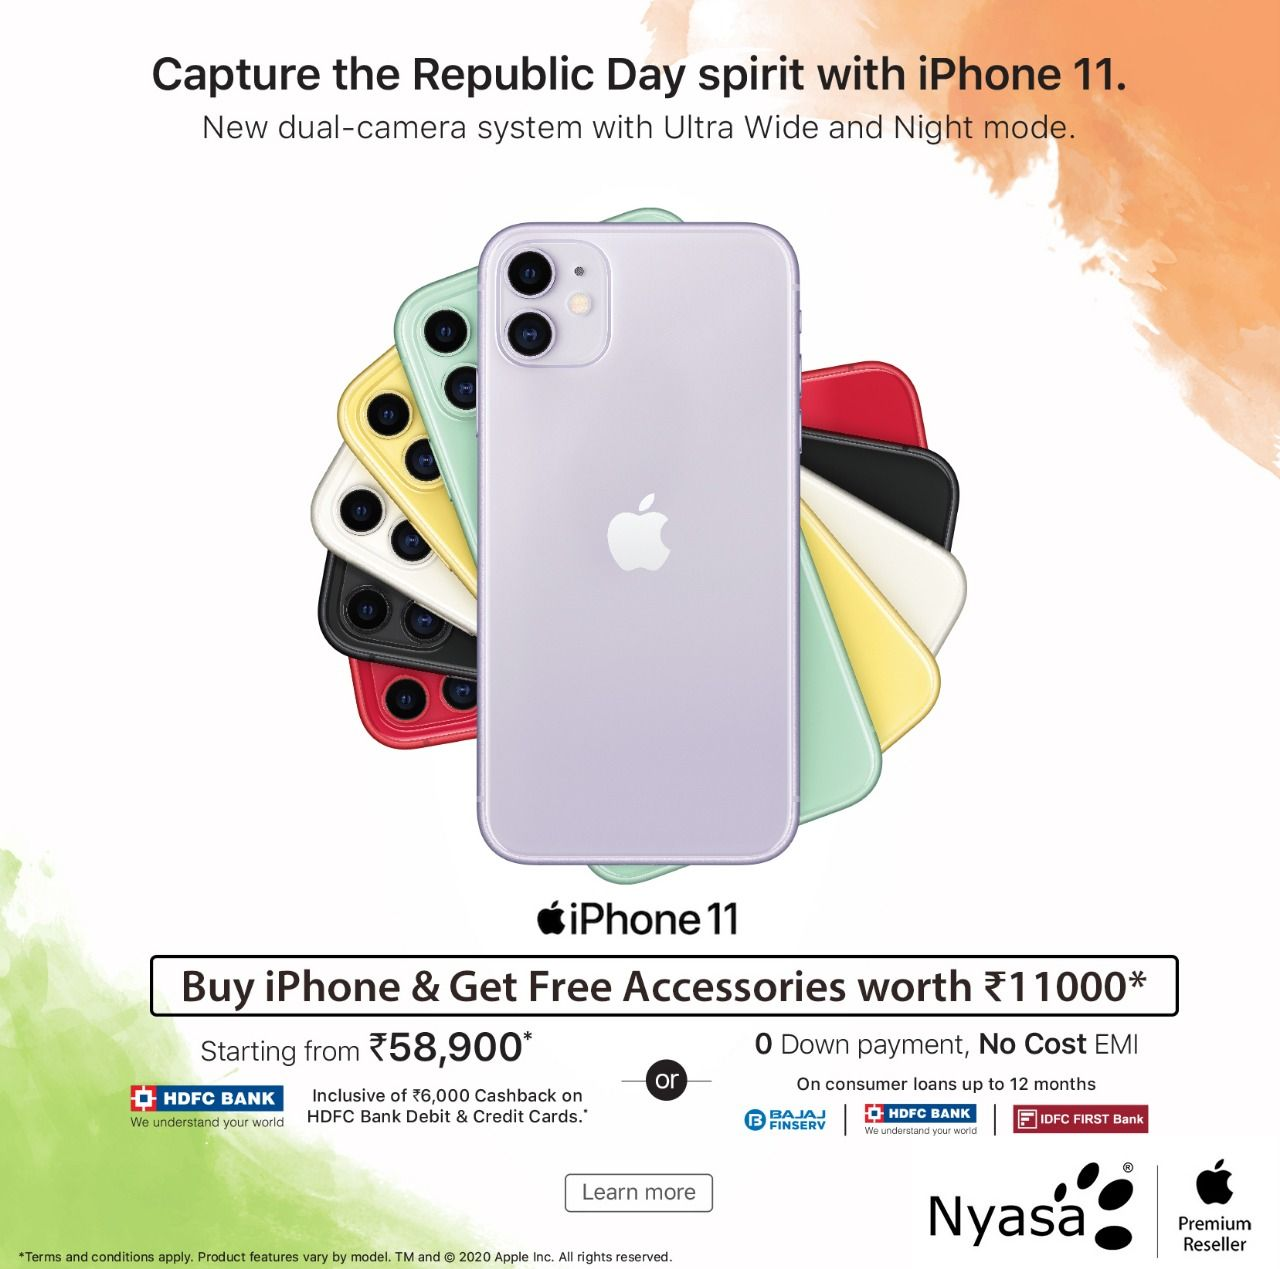 How To Get Apple Products For Free In India